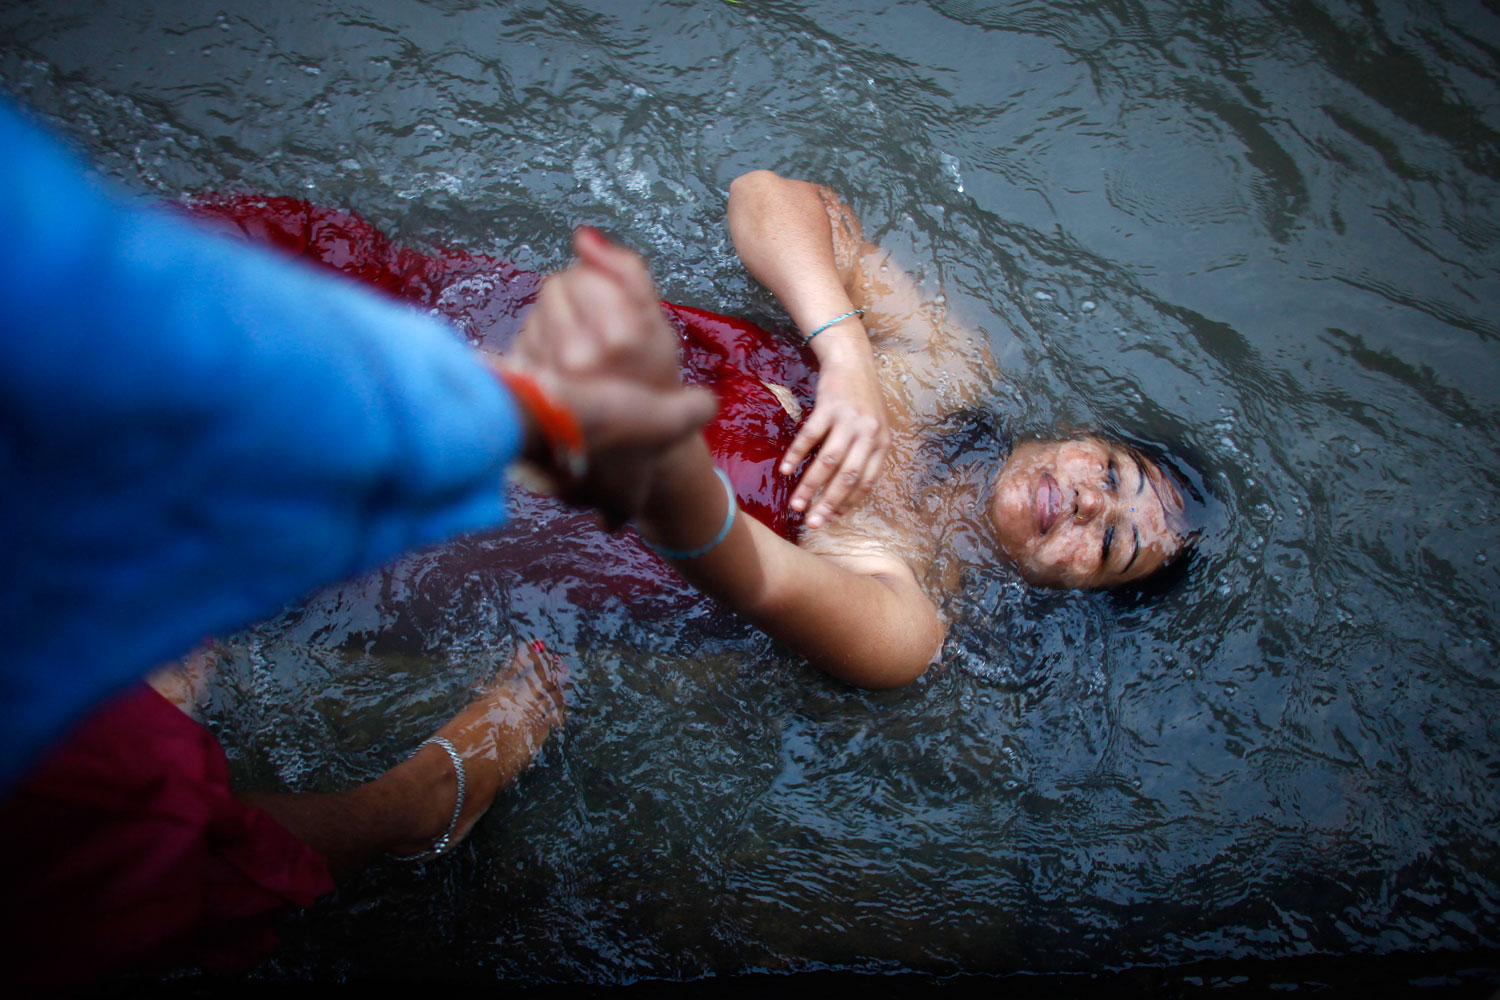 Sept. 20, 2012. A Nepalese devotee takes a holy dip with the help of a friend in the Bagmati River during Rishi Panchami, a purifying and atonement day for women, in Katmandu.